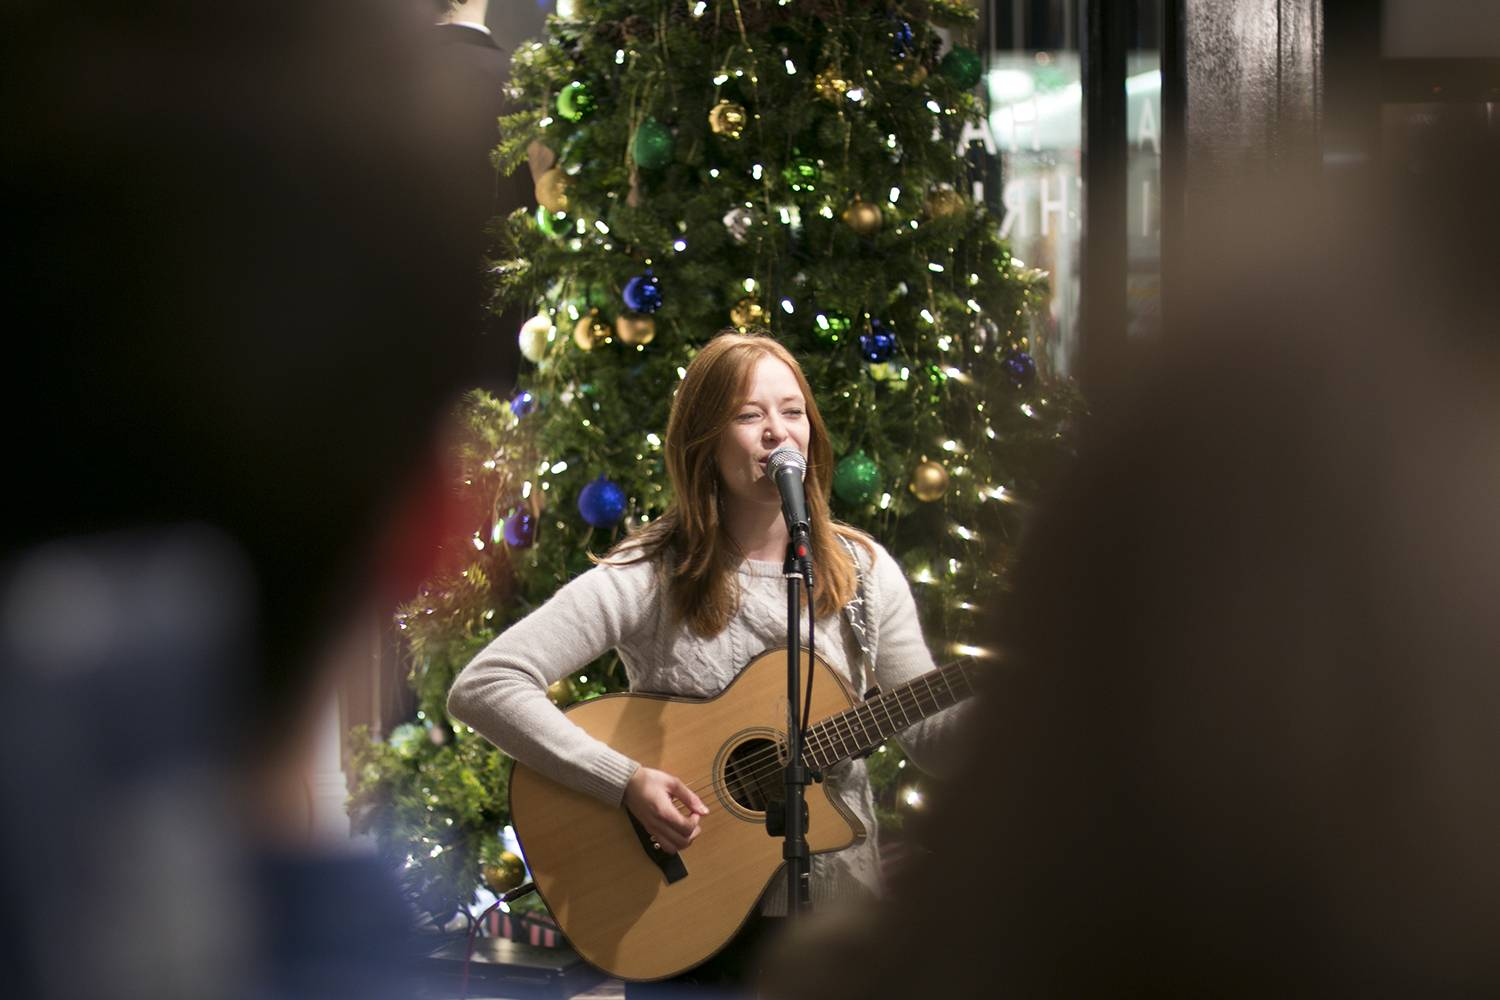 Jack Wills Belfast #CiderSessions Orla Gartland (photo thanks to Jack Wills Social Media team)